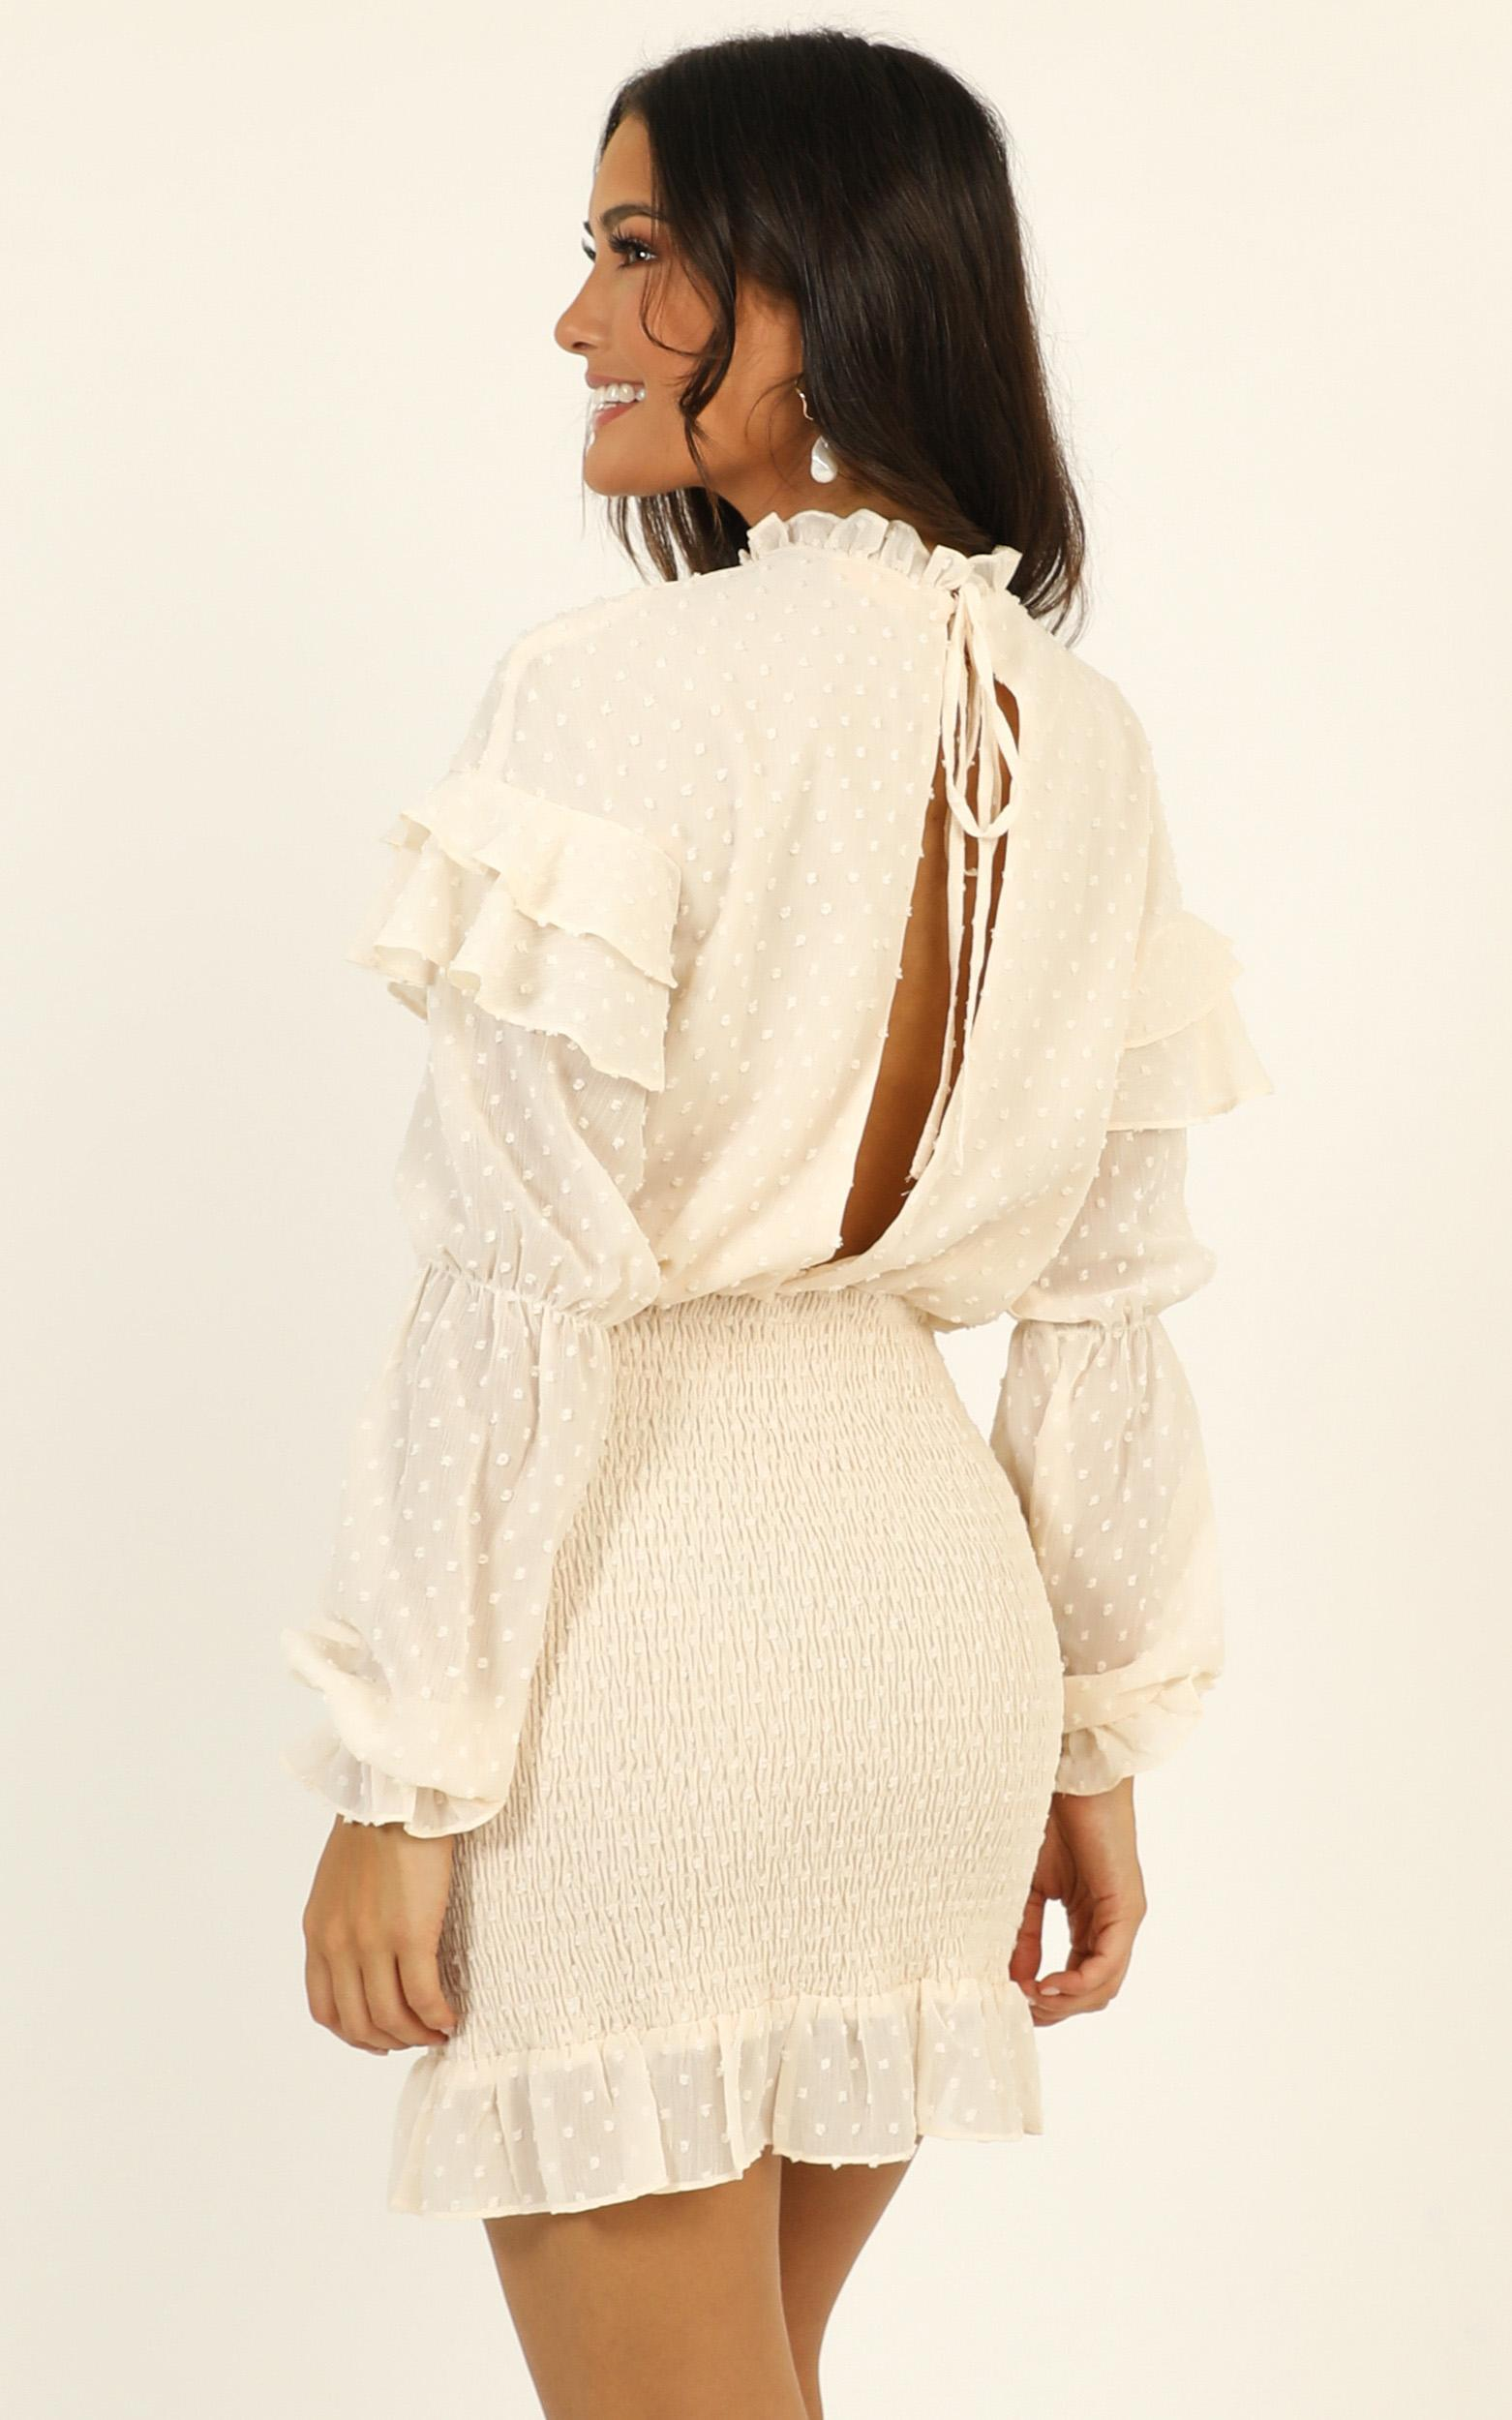 Dreaming about it Dress in cream - 20 (XXXXL), Cream, hi-res image number null